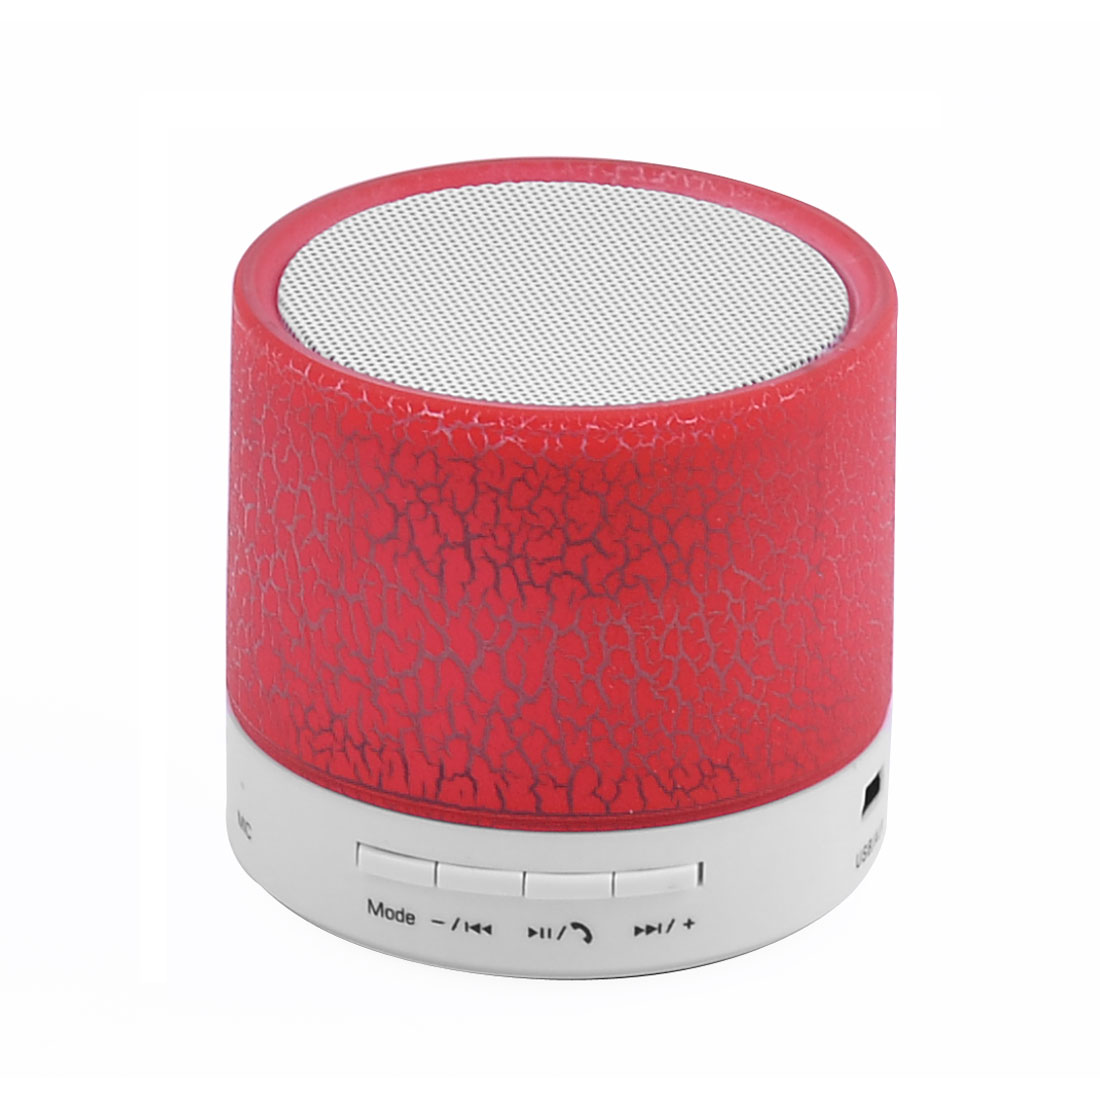 Smartphone Laptop Portable Outdoor LED Mini Wireless bluetooth Hand-free Call Stereo Speaker Player Red